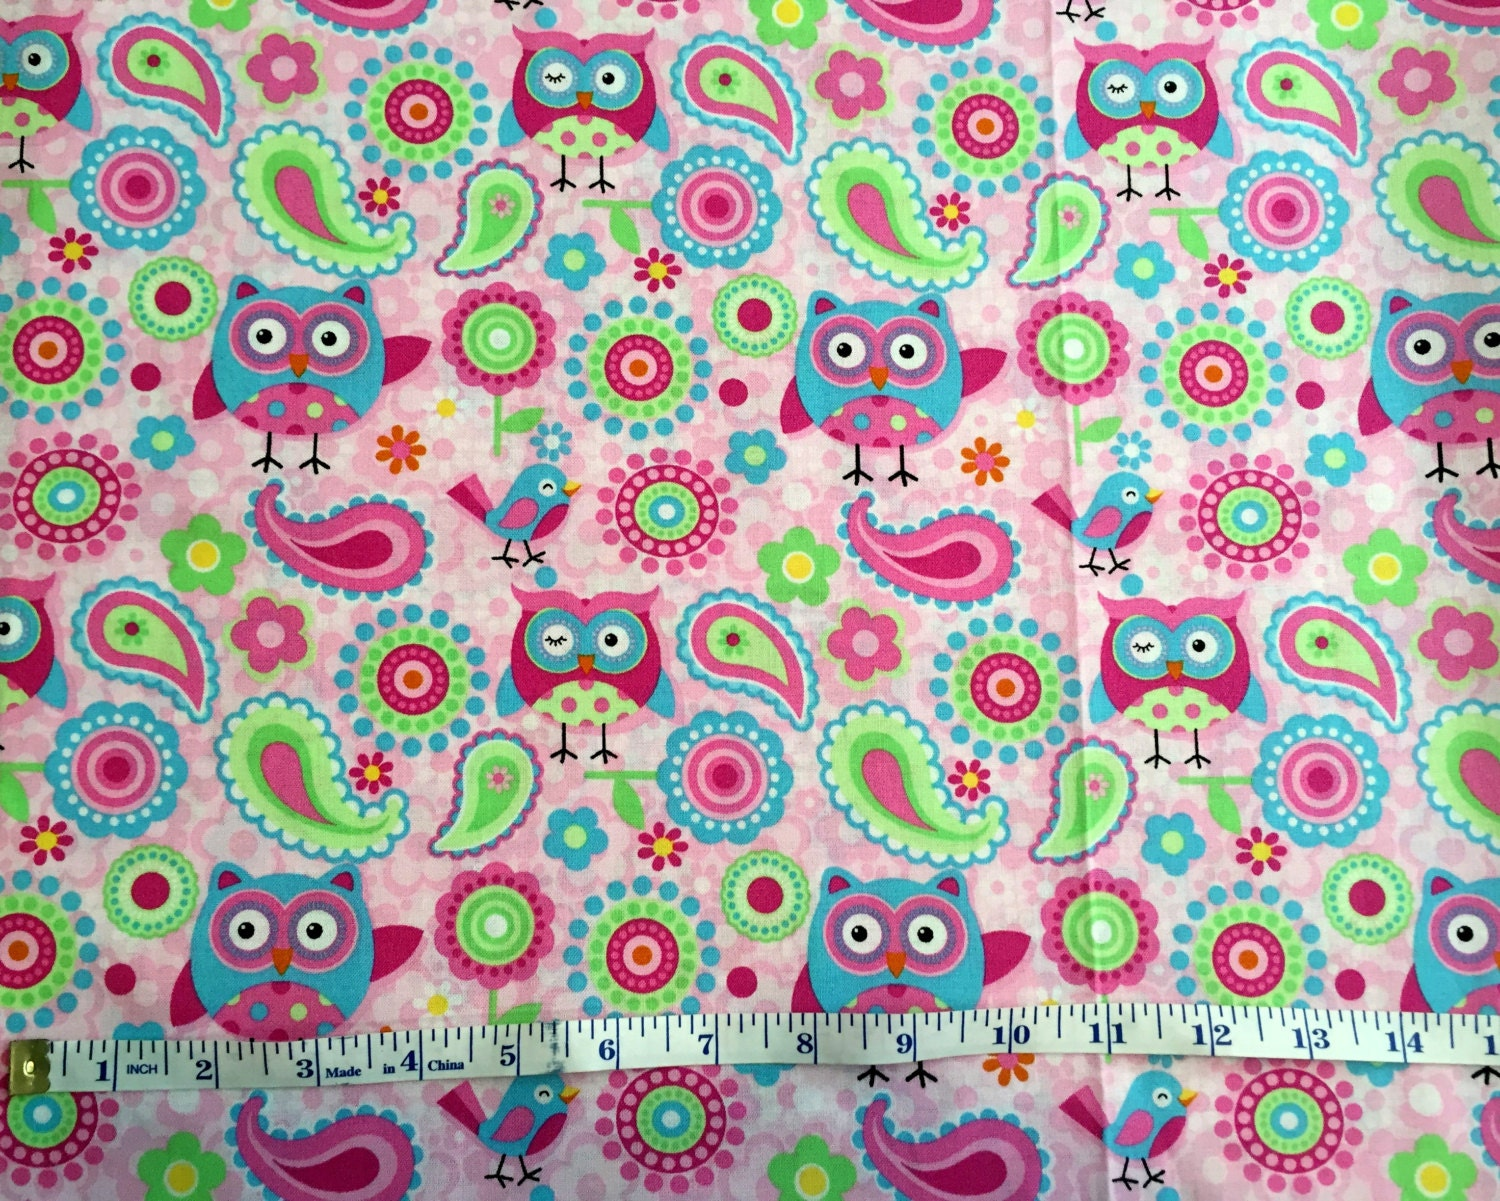 Pink Owls Cotton Quilting Fabric Remnant Pink Birds Cotton